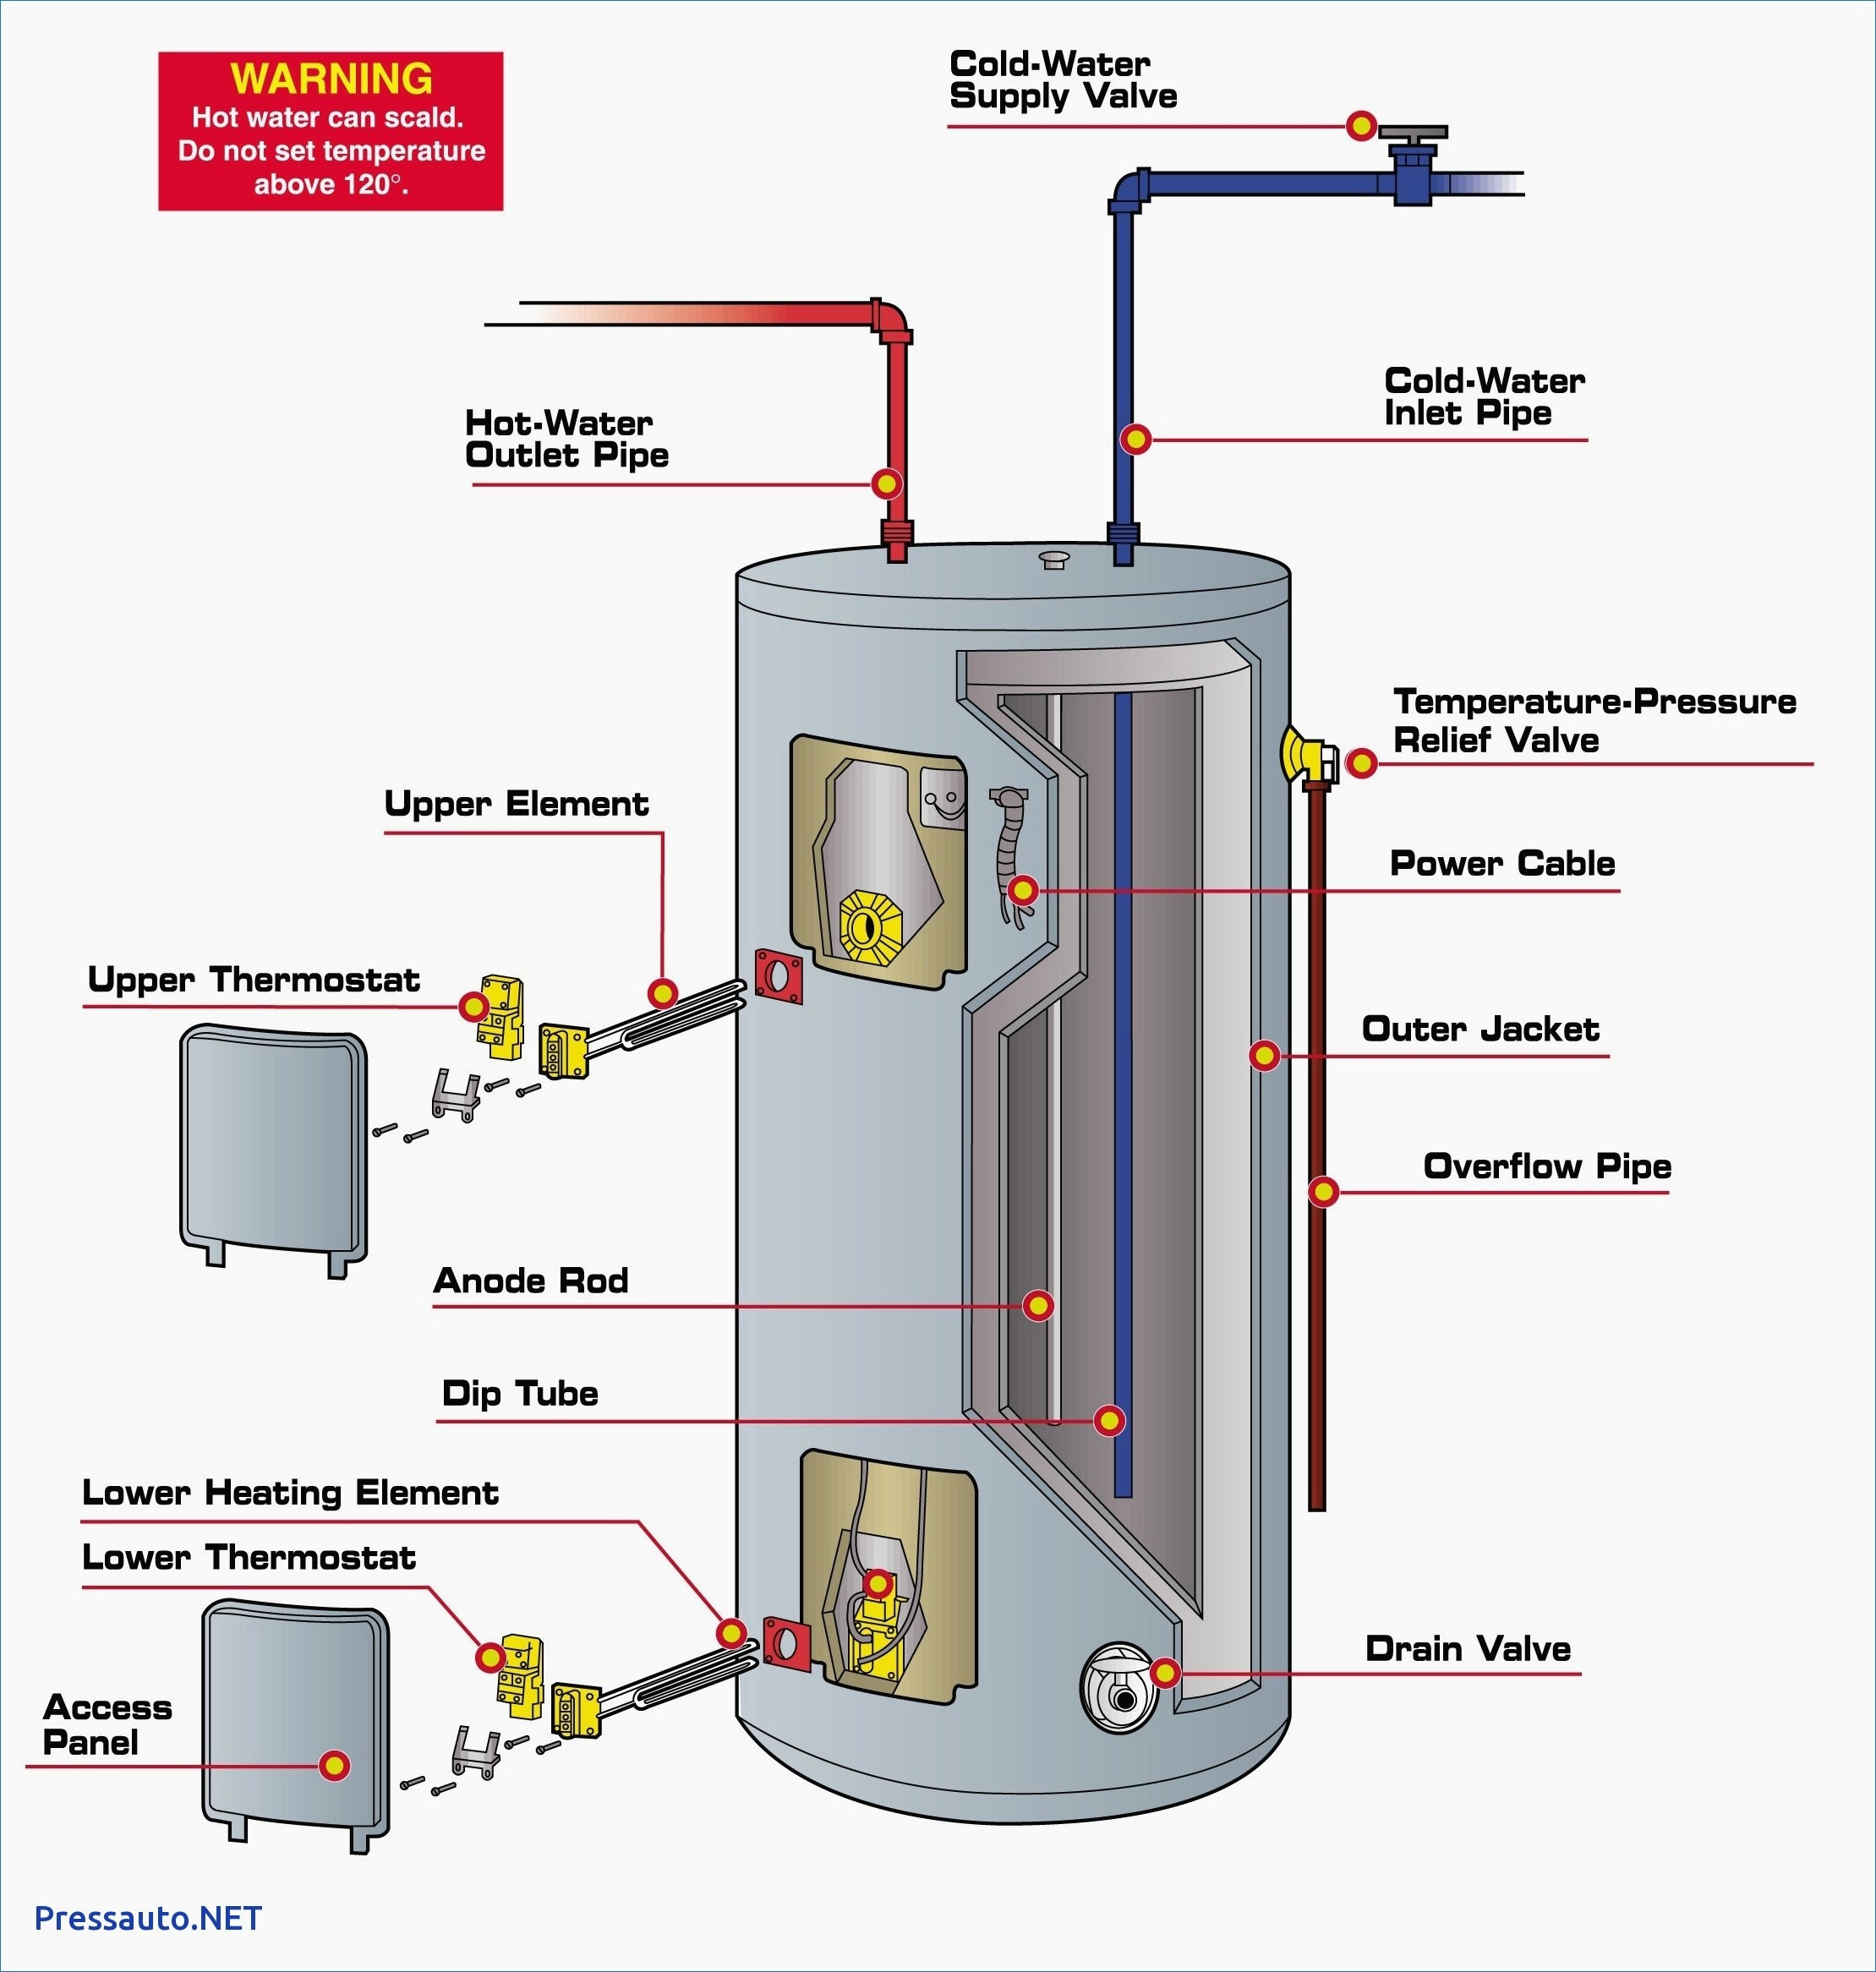 DIAGRAM] Richmond Hot Water Heater Wiring Diagram Electric FULL Version HD  Quality Diagram Electric - MAPDIAGRAM7S.YOURSAIL.ITmapdiagram7s.yoursail.it